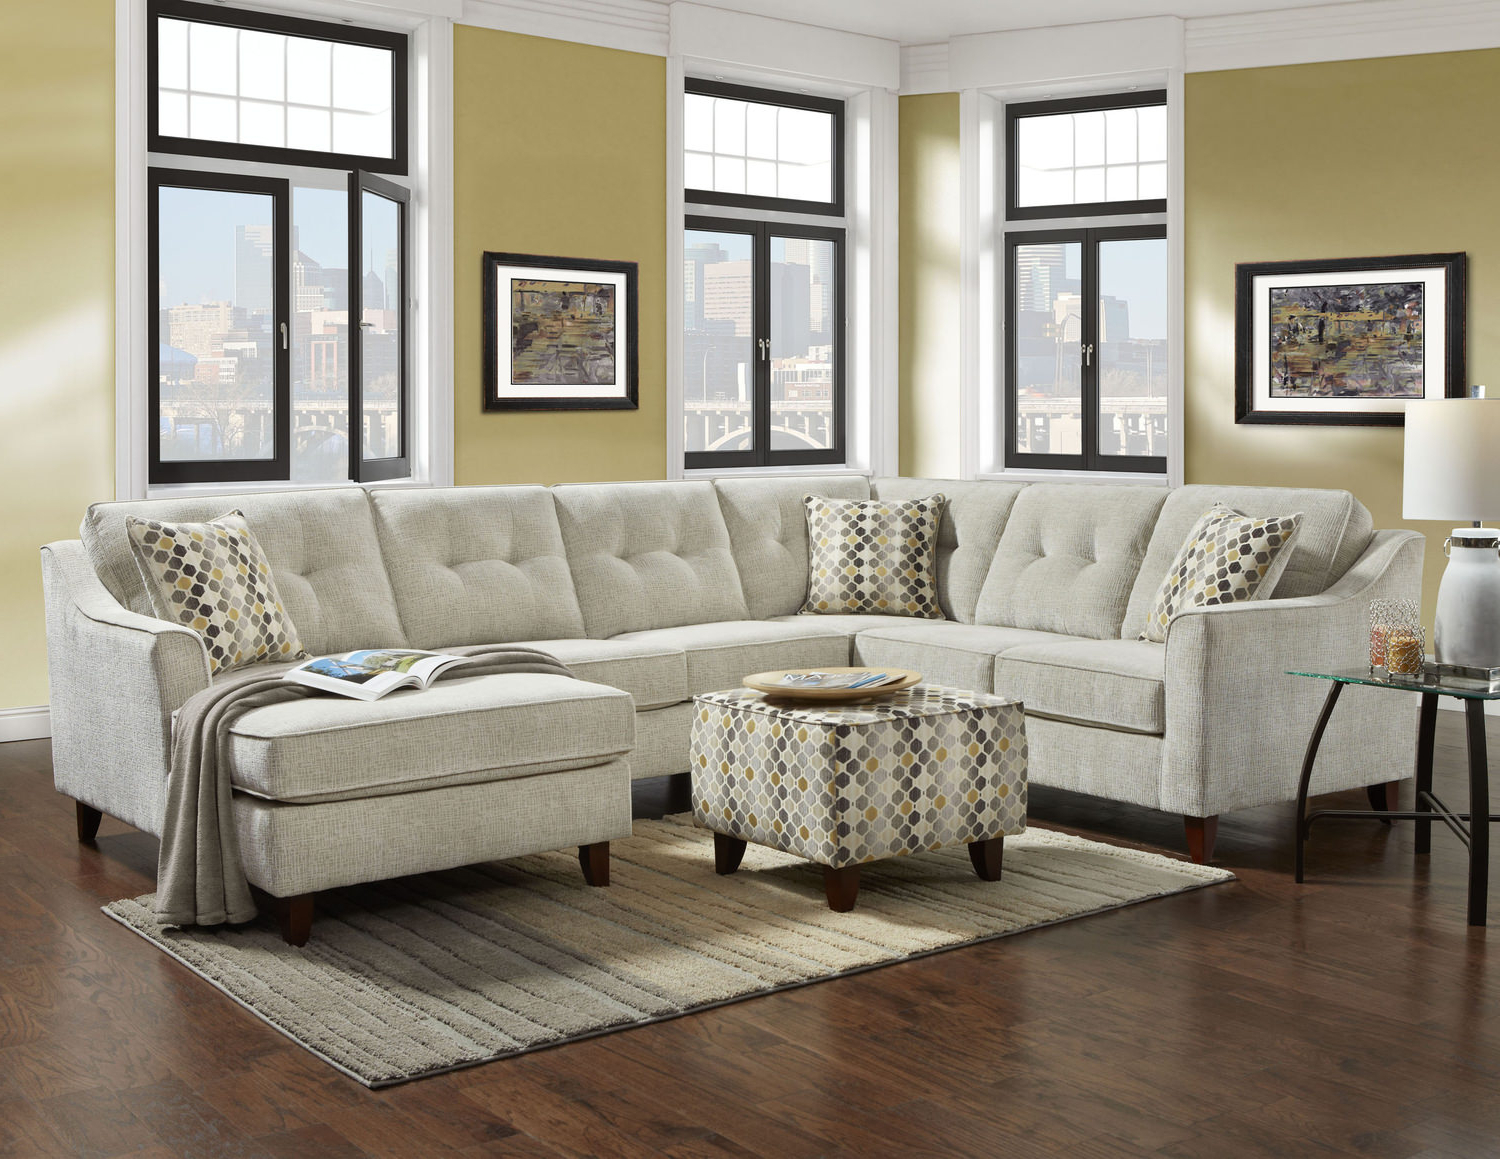 Malbry Point 3 Piece Sectionals With Laf Chaise In Most Up To Date Colby 3 Piece Sectional Dock86 – Locsbyhelenelorasa (View 4 of 20)